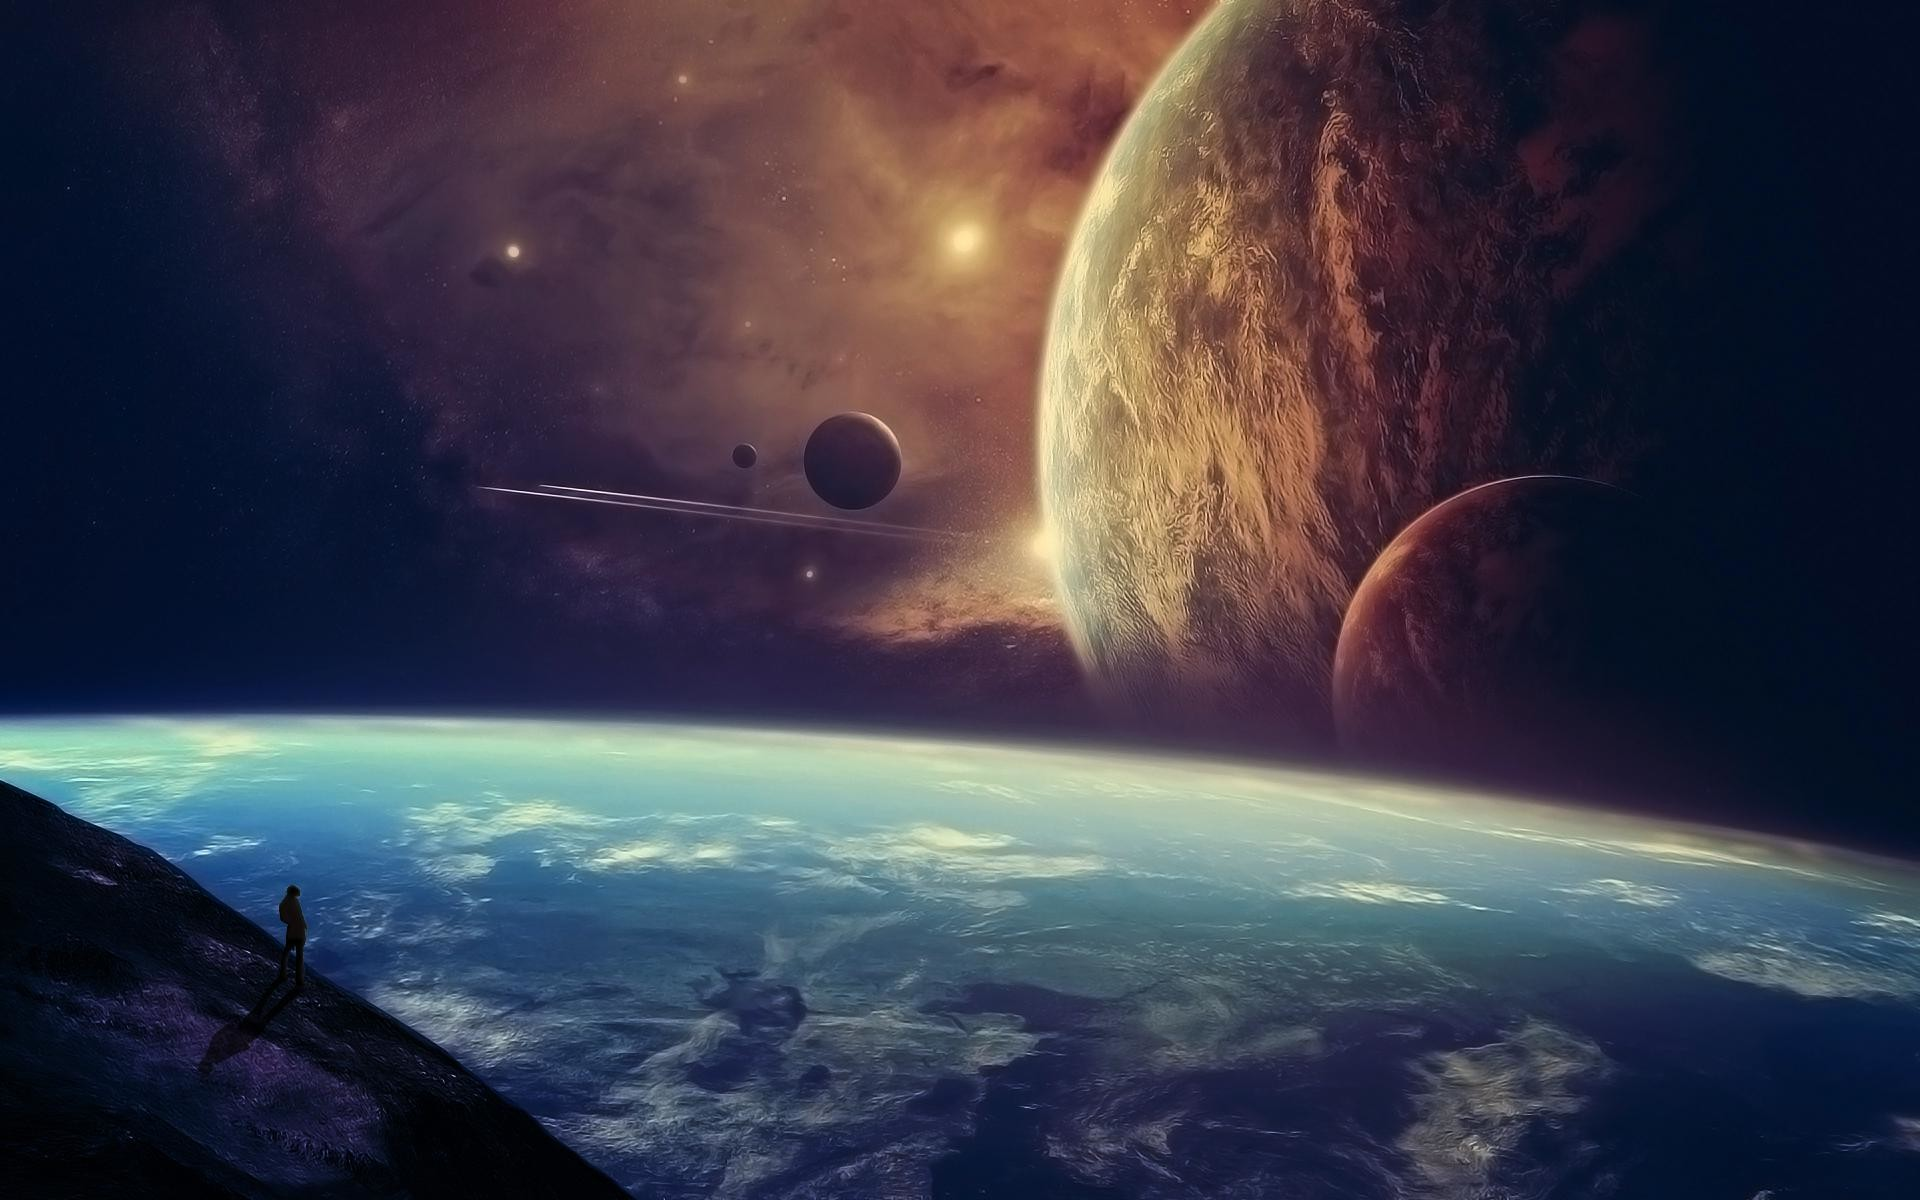 Res: 1920x1200, Download Original Wallpaper Category:space ...